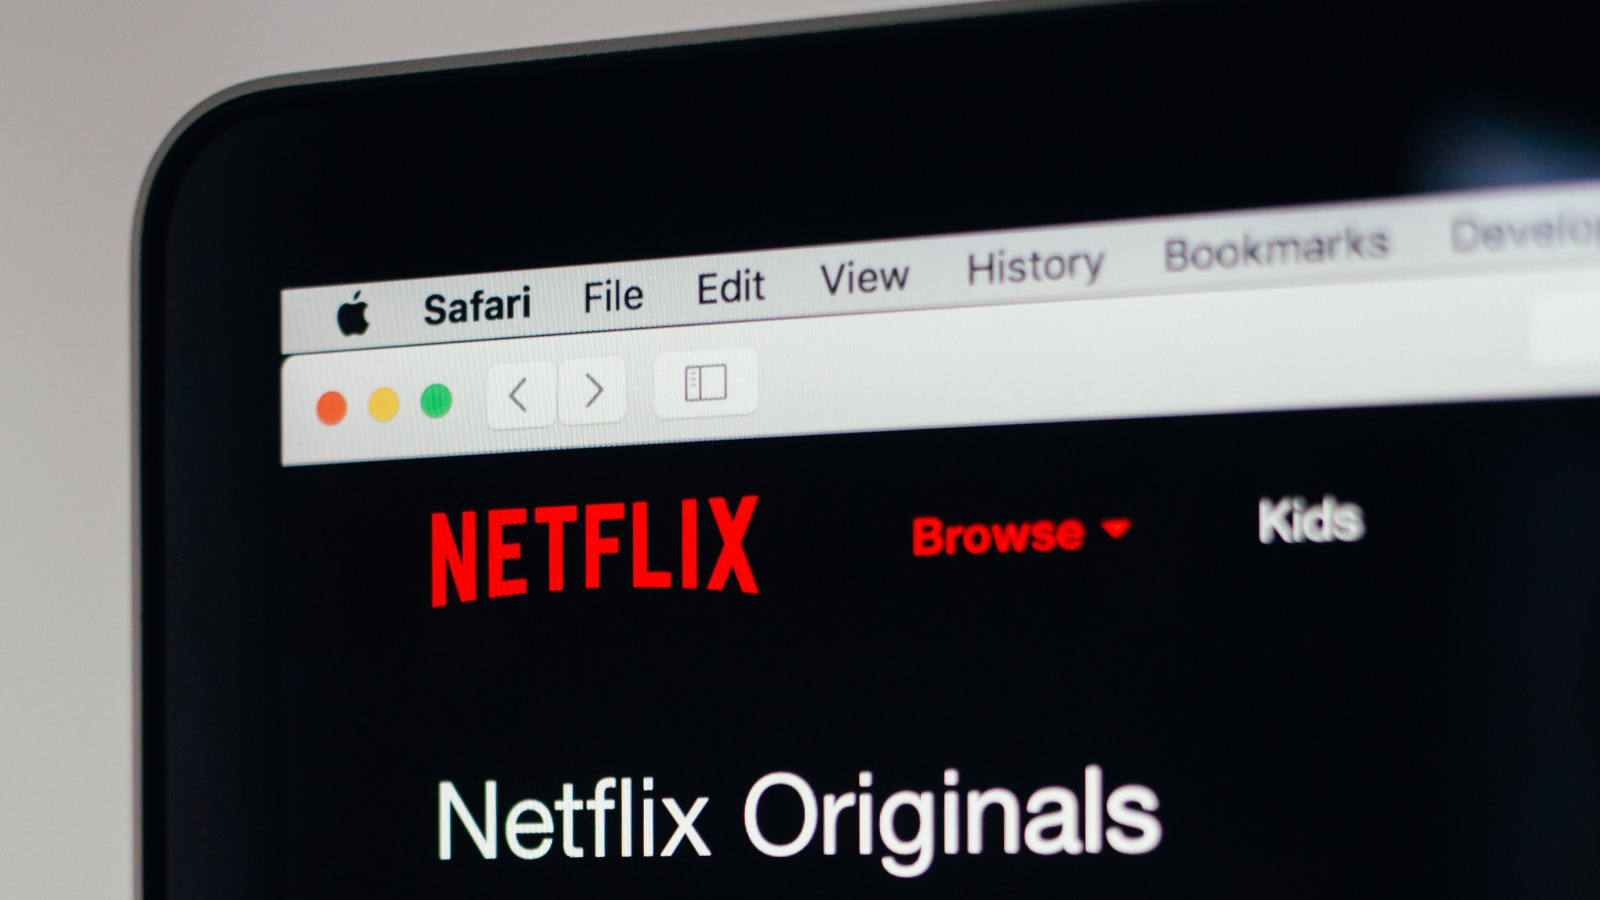 Netflix Originals Unsplash